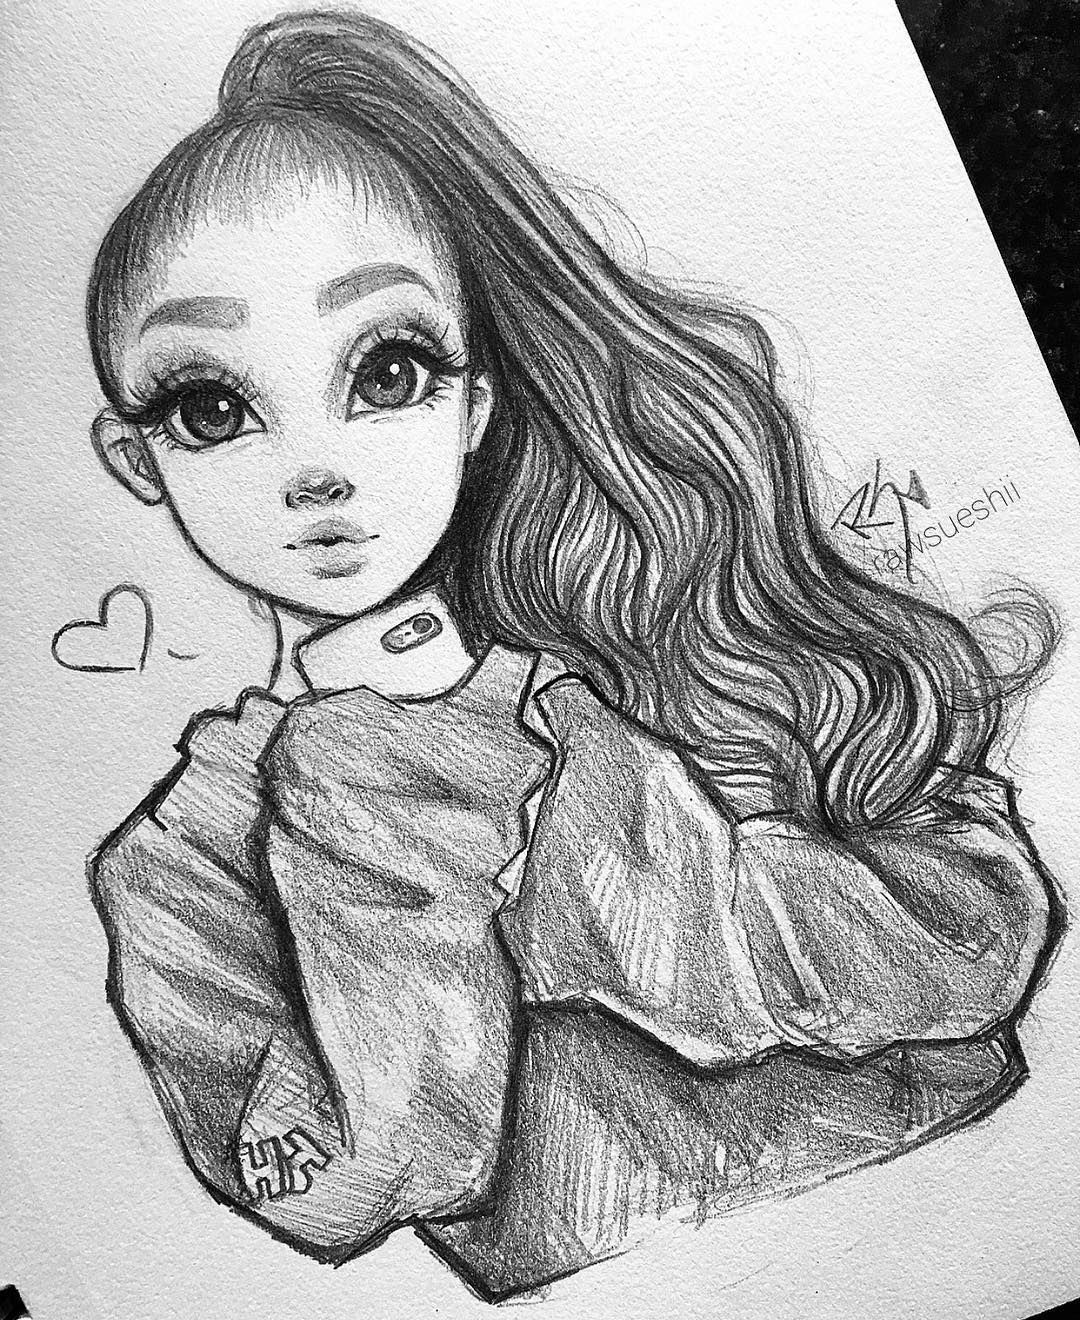 Christina lorre in 2019 sketches drawing sketches